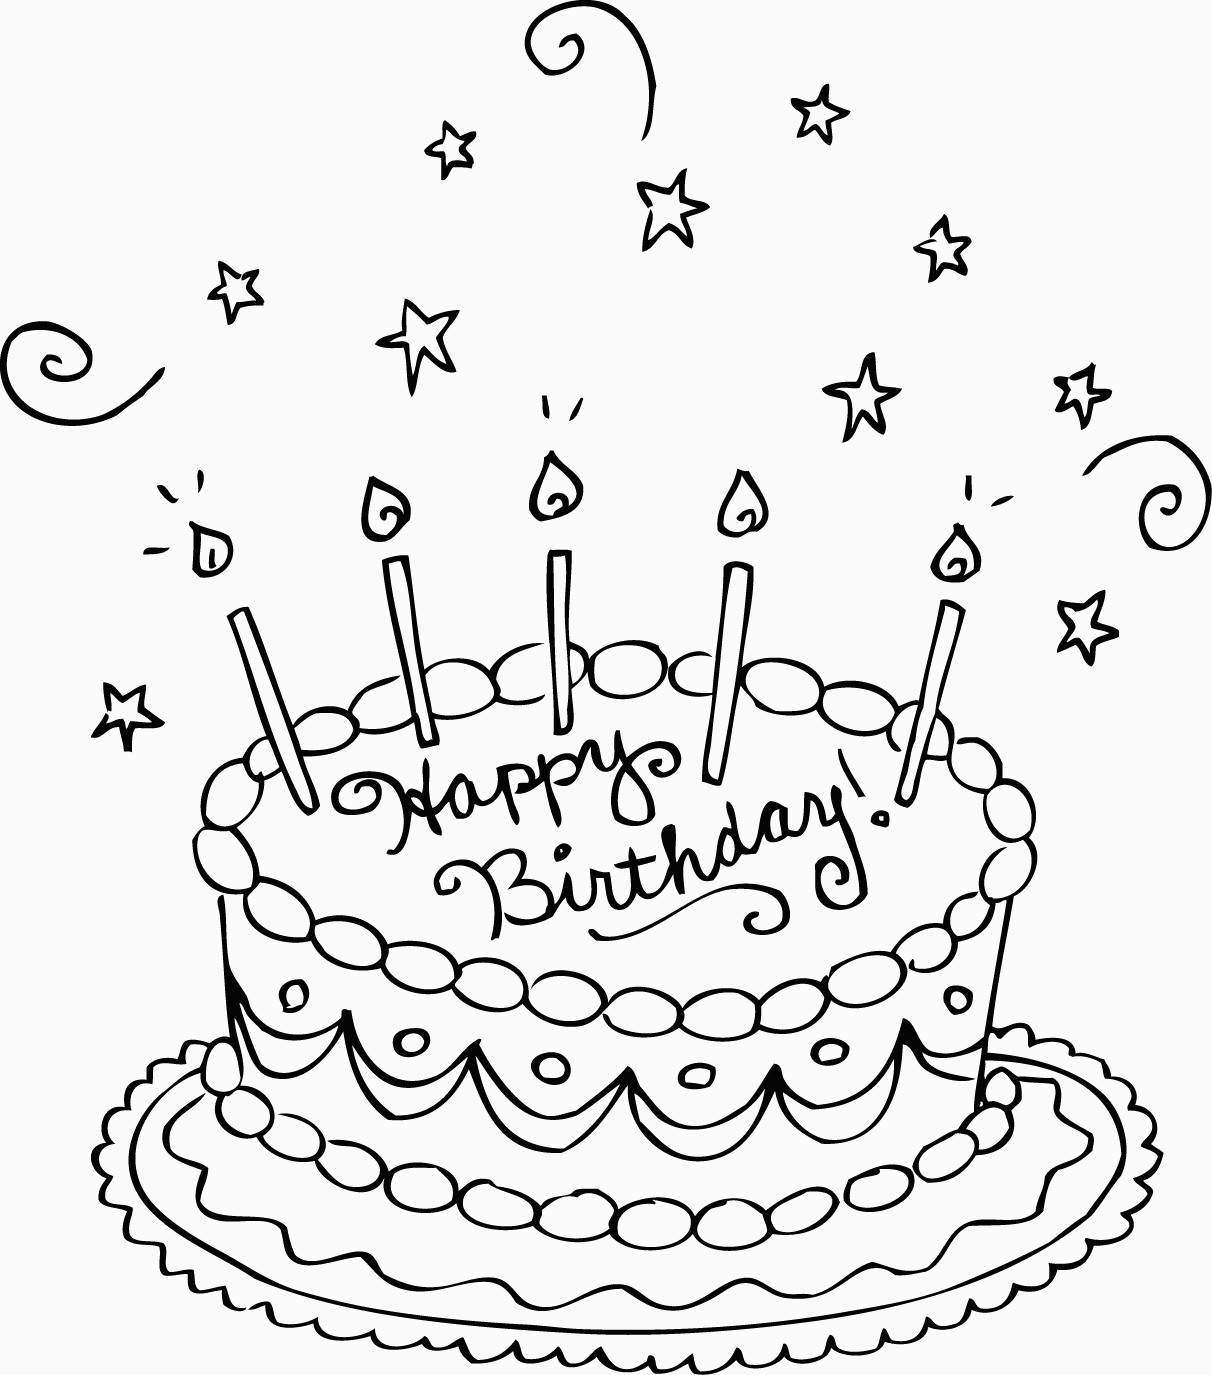 Free Printable Birthday Cake Coloring Pages For Kids For Party - Free Printable Pictures Of Birthday Cakes